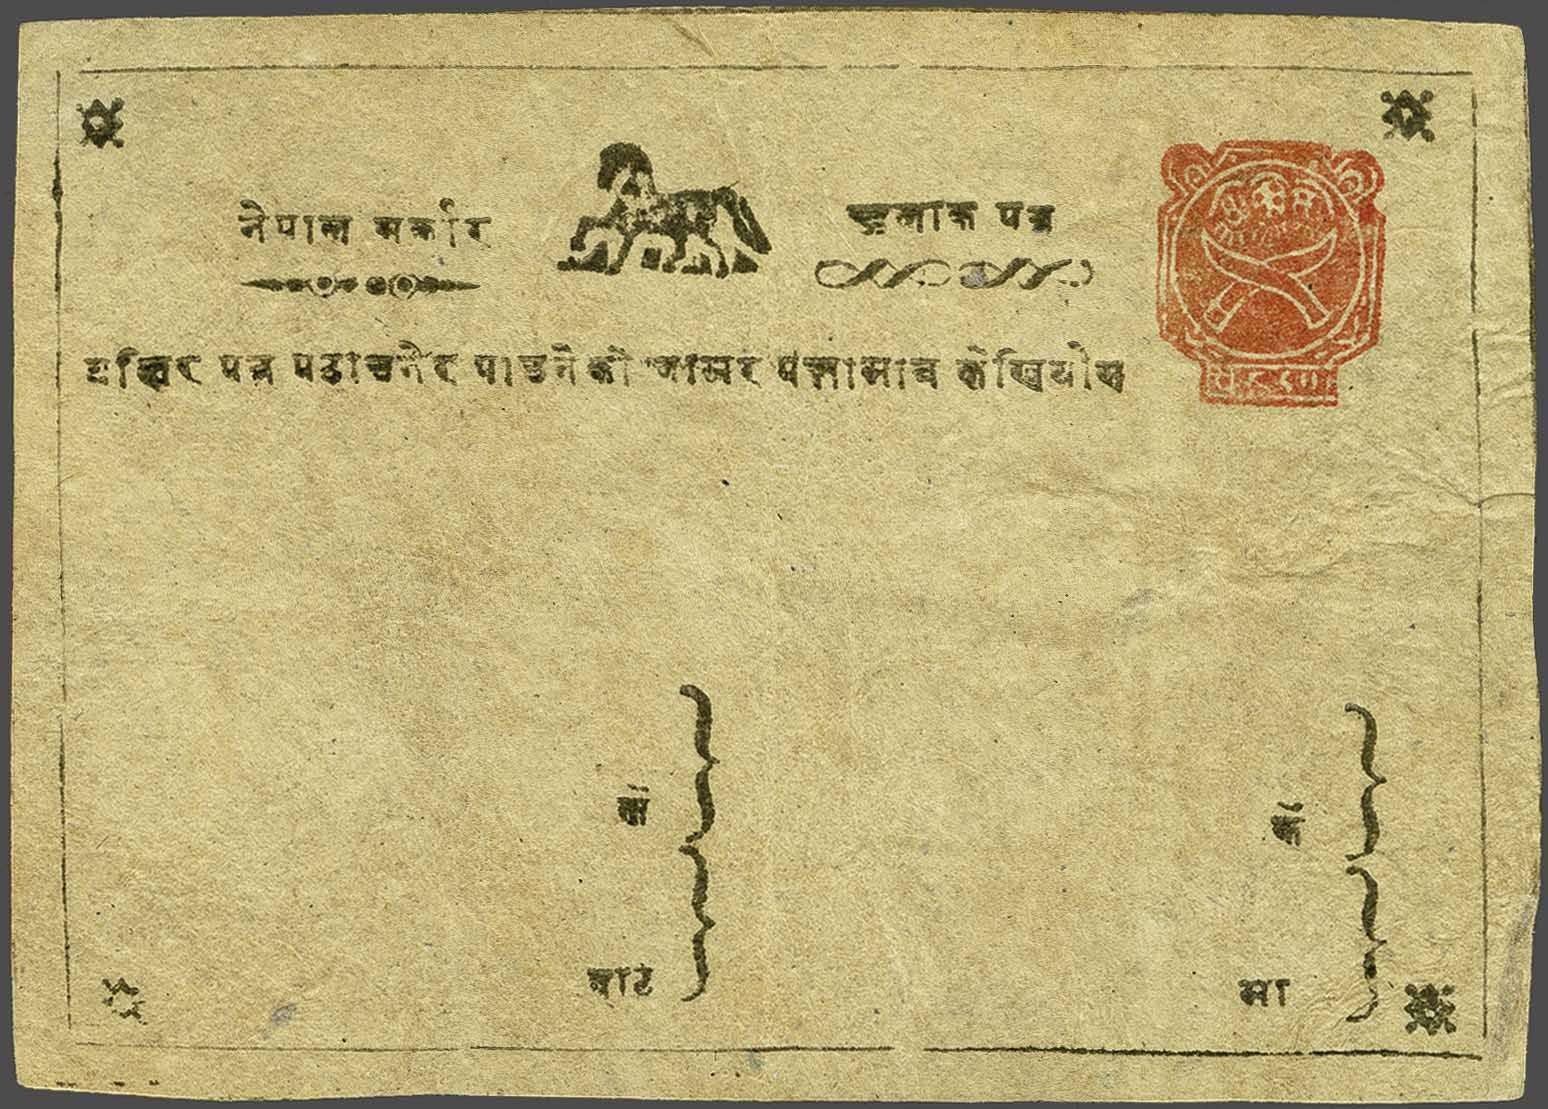 Lot 13 - Great Britain and former colonies Nepal -  Corinphila Veilingen Auction 245-246 Day 1 - Nepal - The Dick van der Wateren Collection, Foreign countries - Single lots, Picture postcards